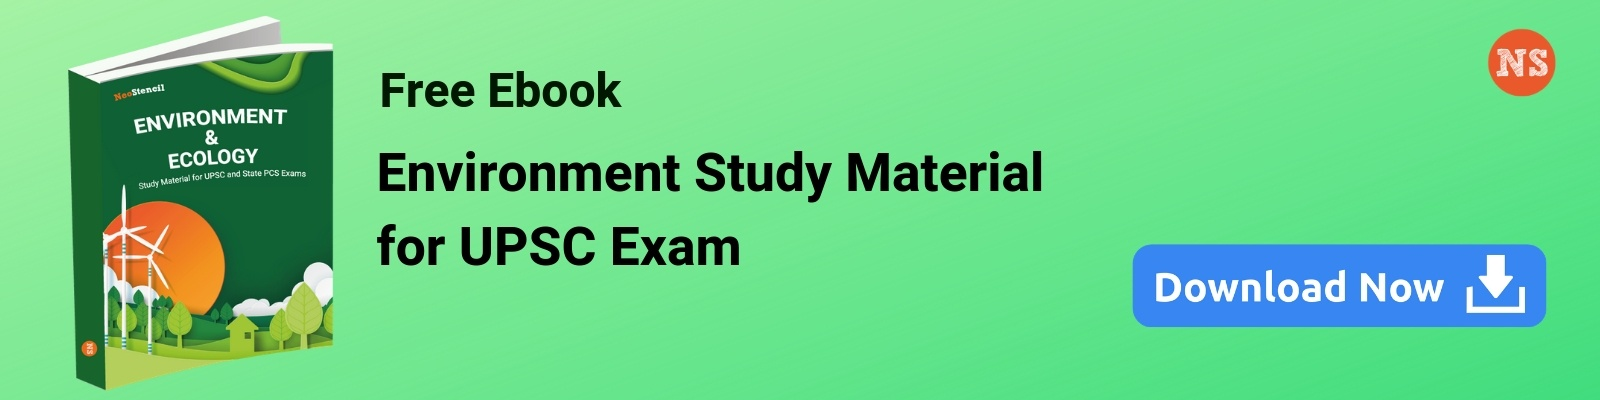 Environment Study Material for UPSC Preparation | NeoStencil